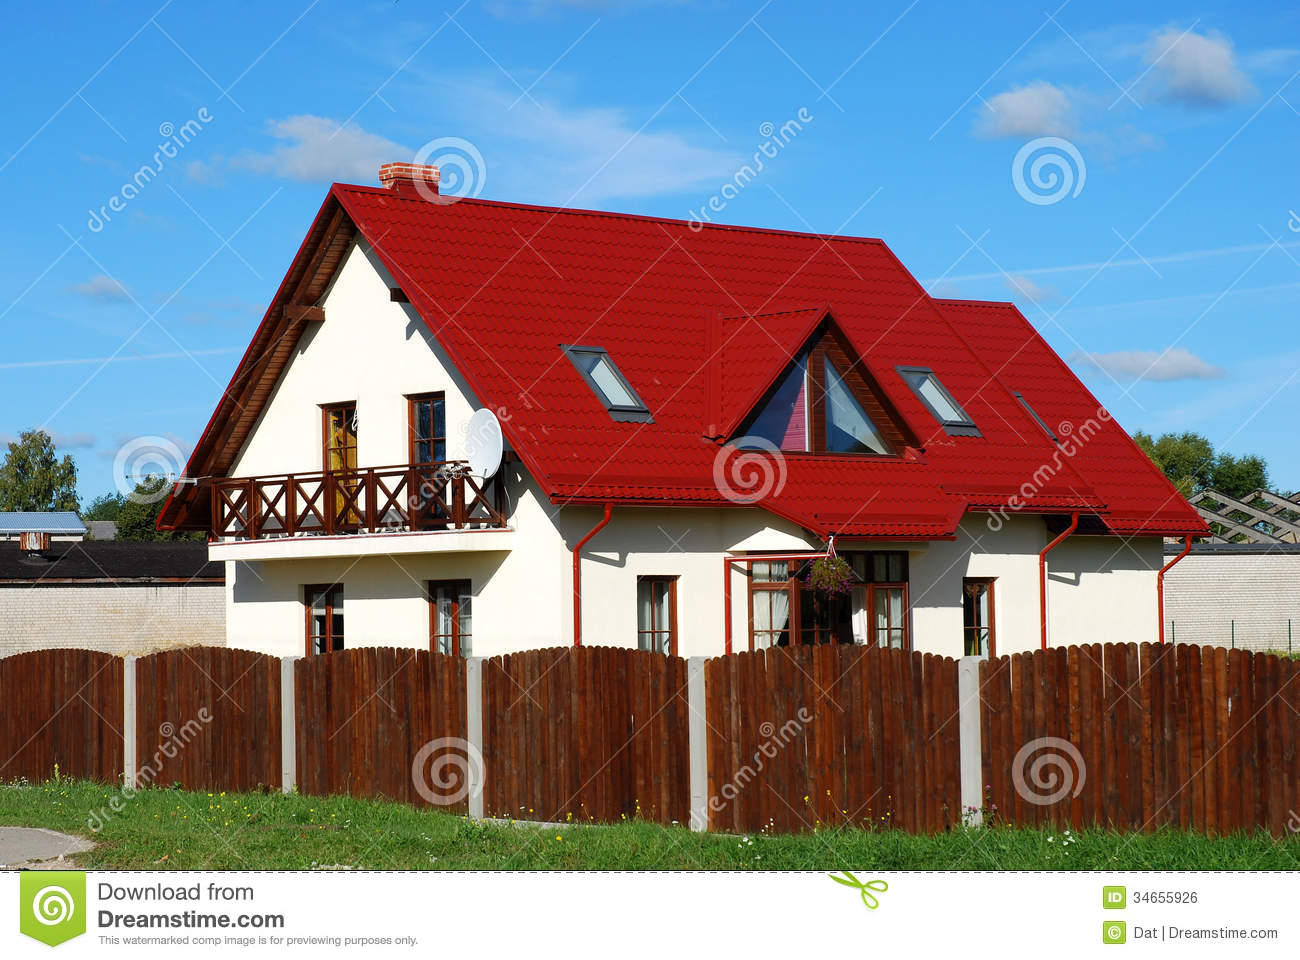 Red roof house